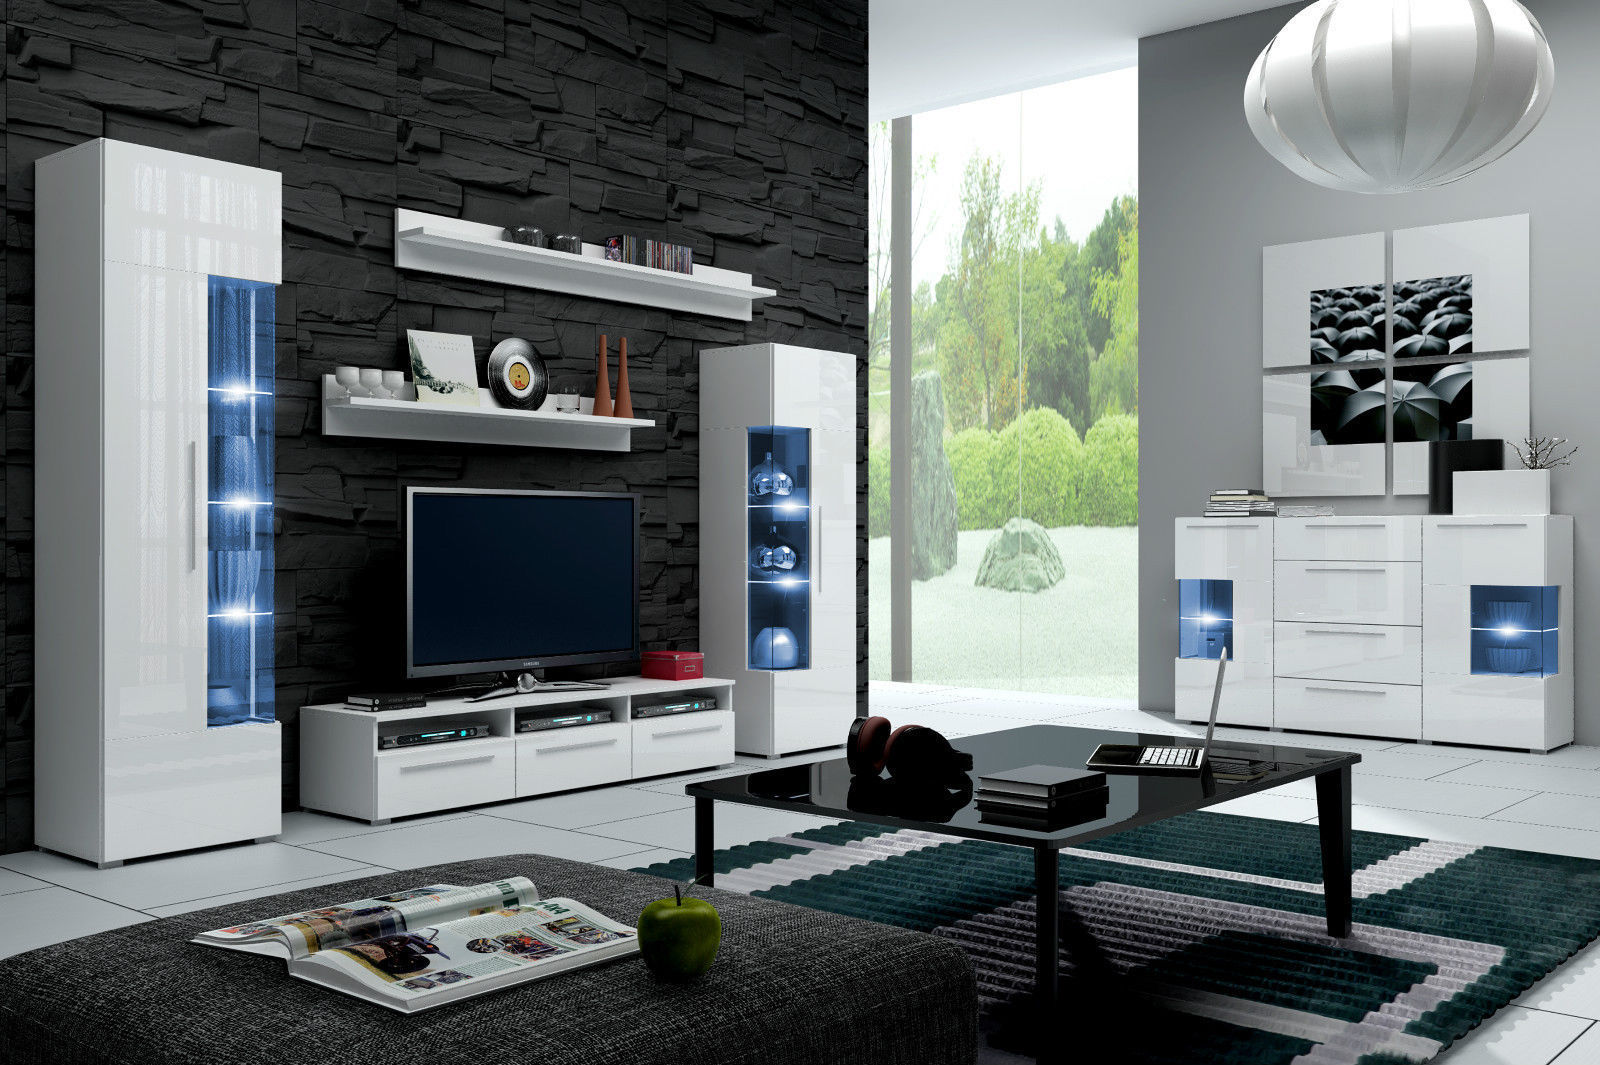 hochglanz wohnwand roma italienisches design mit led. Black Bedroom Furniture Sets. Home Design Ideas